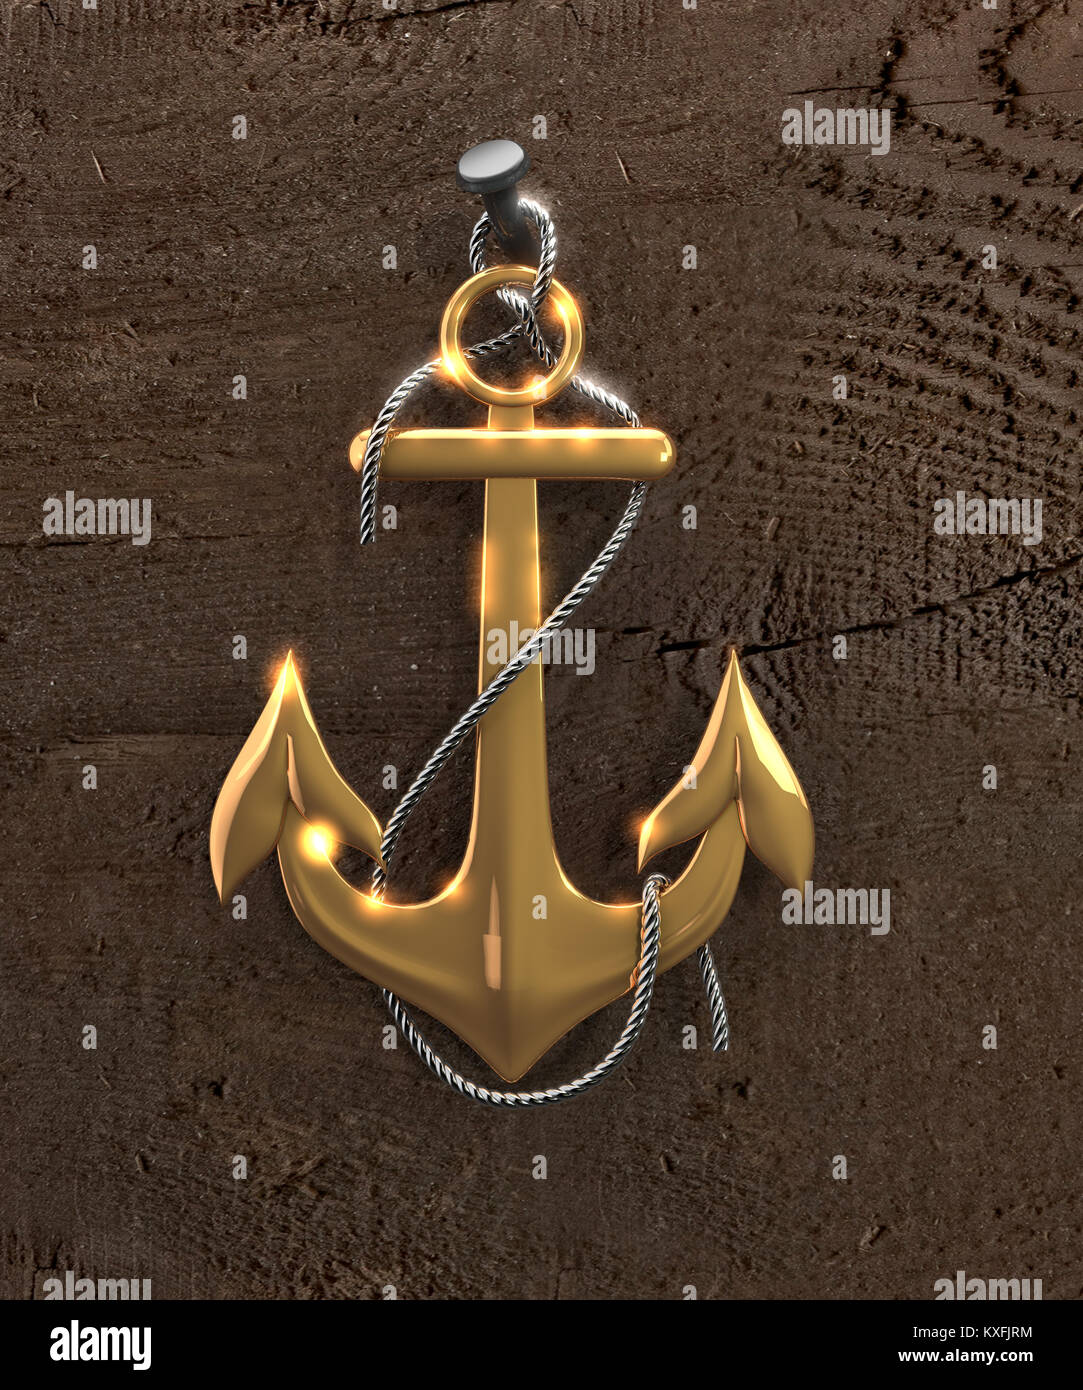 Gold Anchor Isolated On A Brown Background